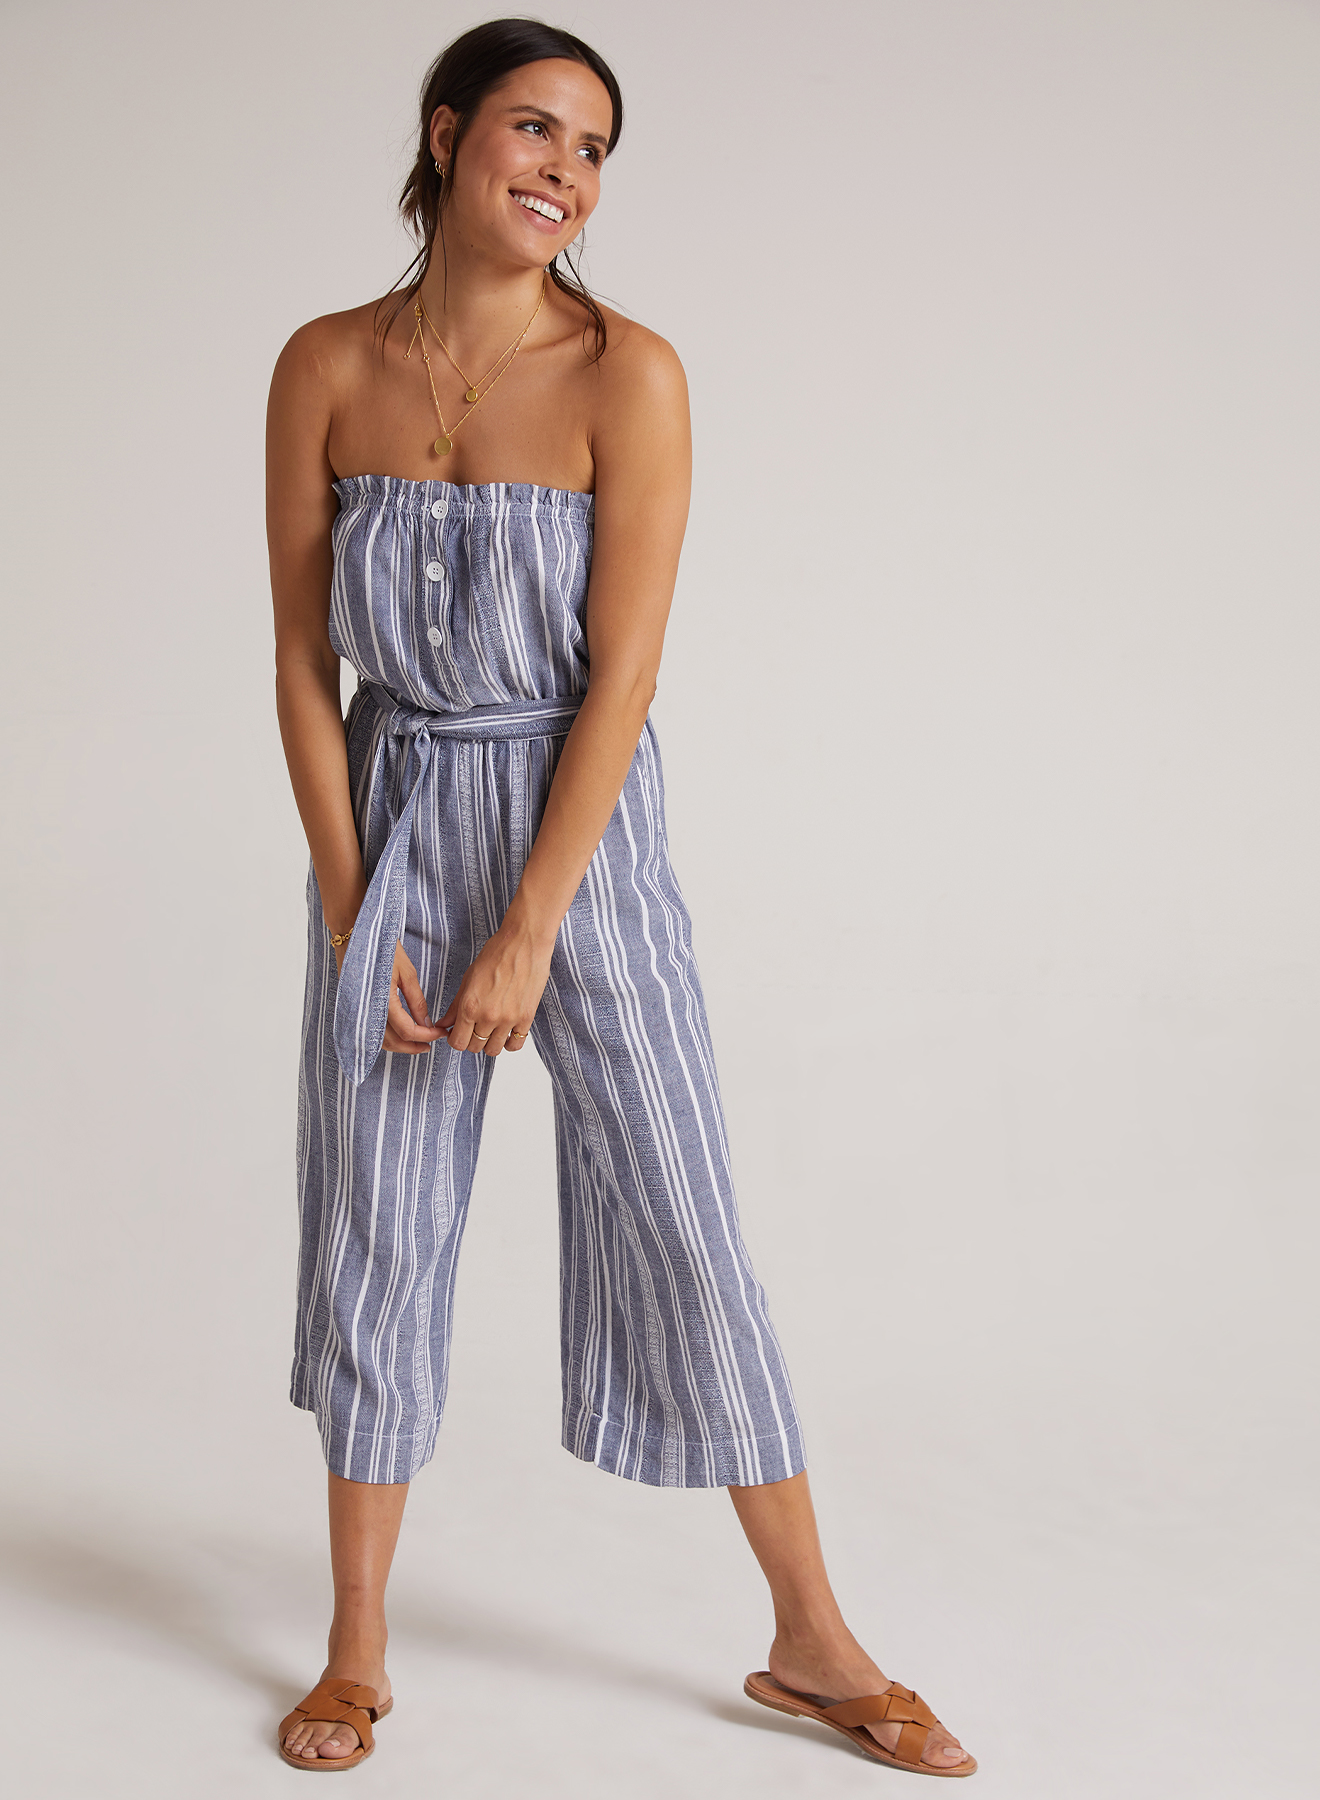 Ruffle Strapless Jumpsuit - Navy/White